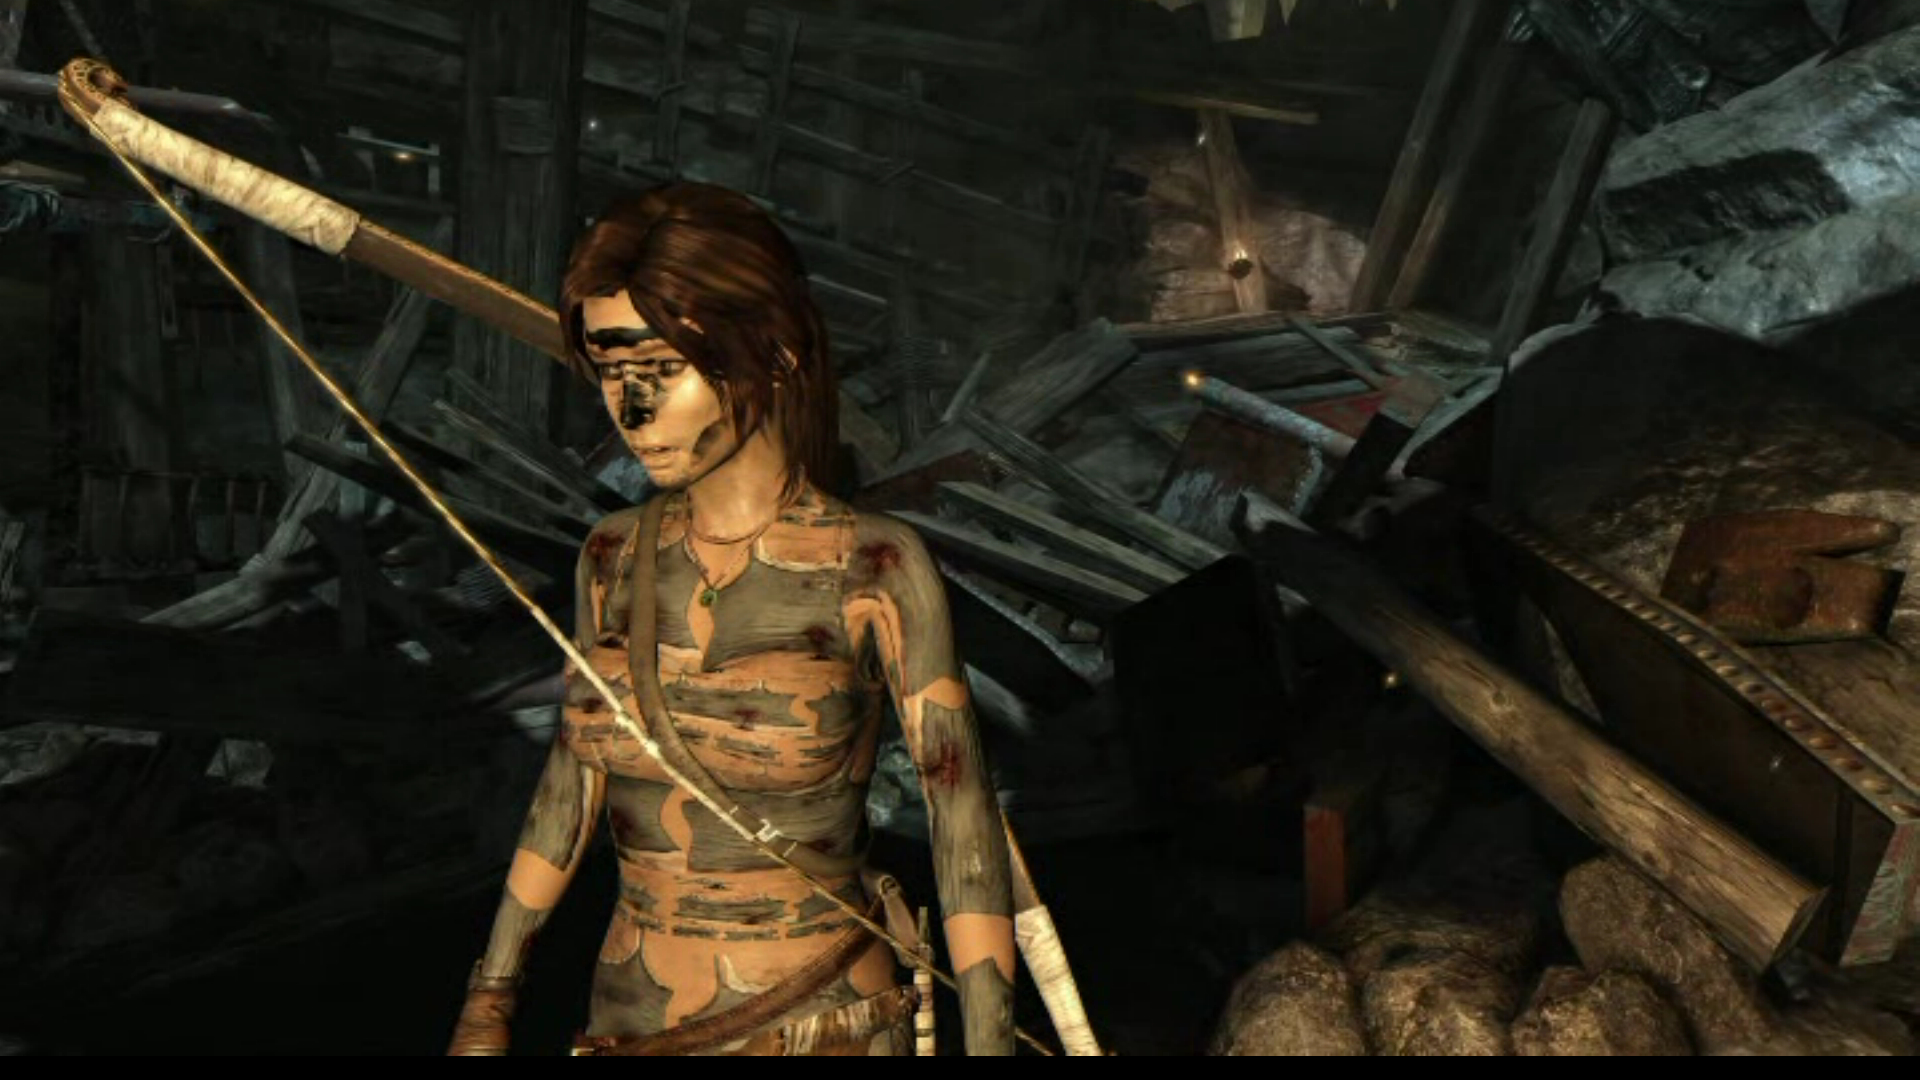 Lara croft die topless porno galleries